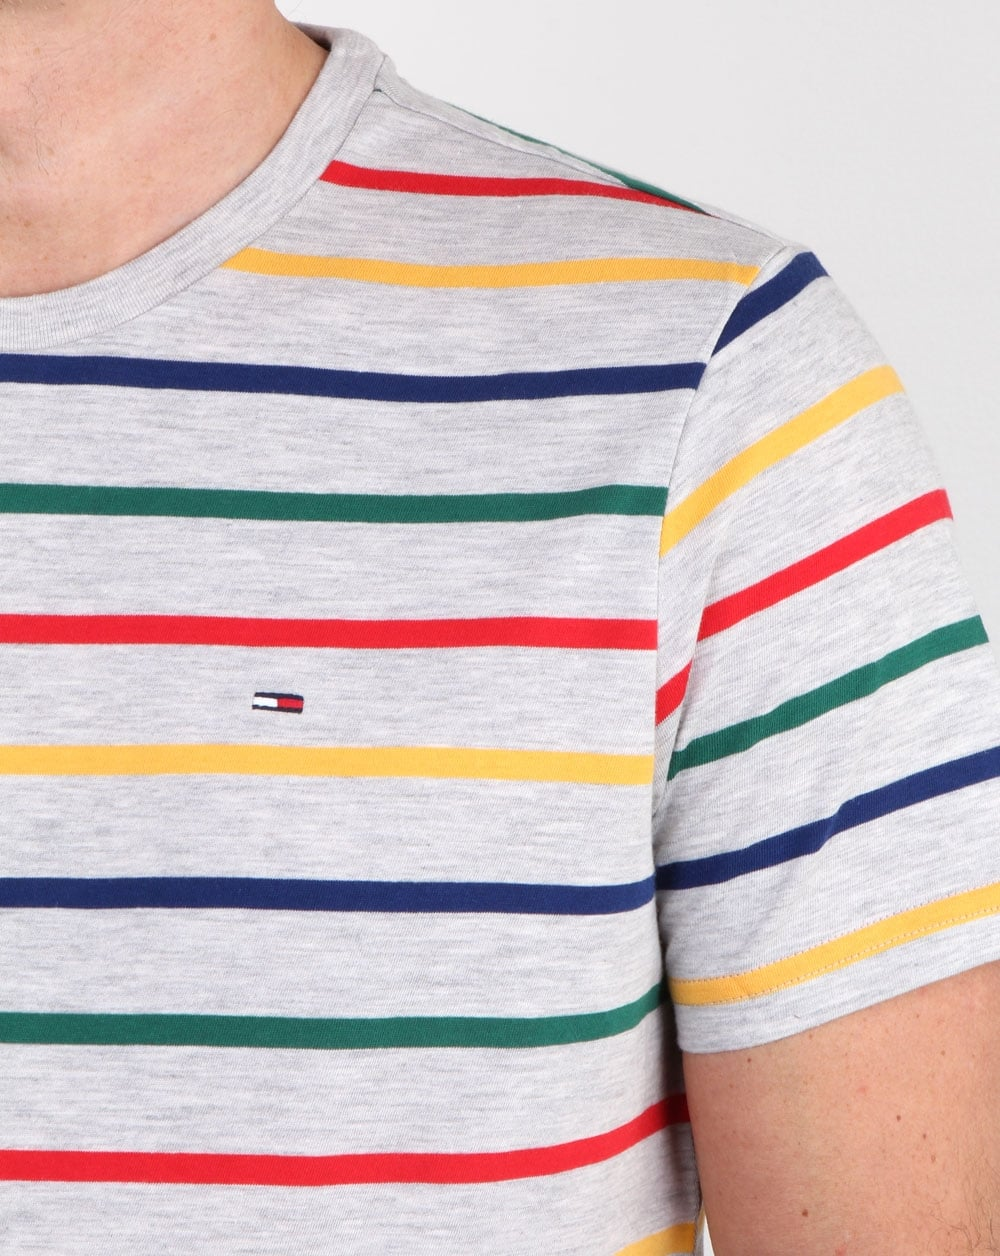 Tommy hilfiger multi stripe t shirt white mens tee cotton for Tommy hilfiger fitzgerald striped shirt